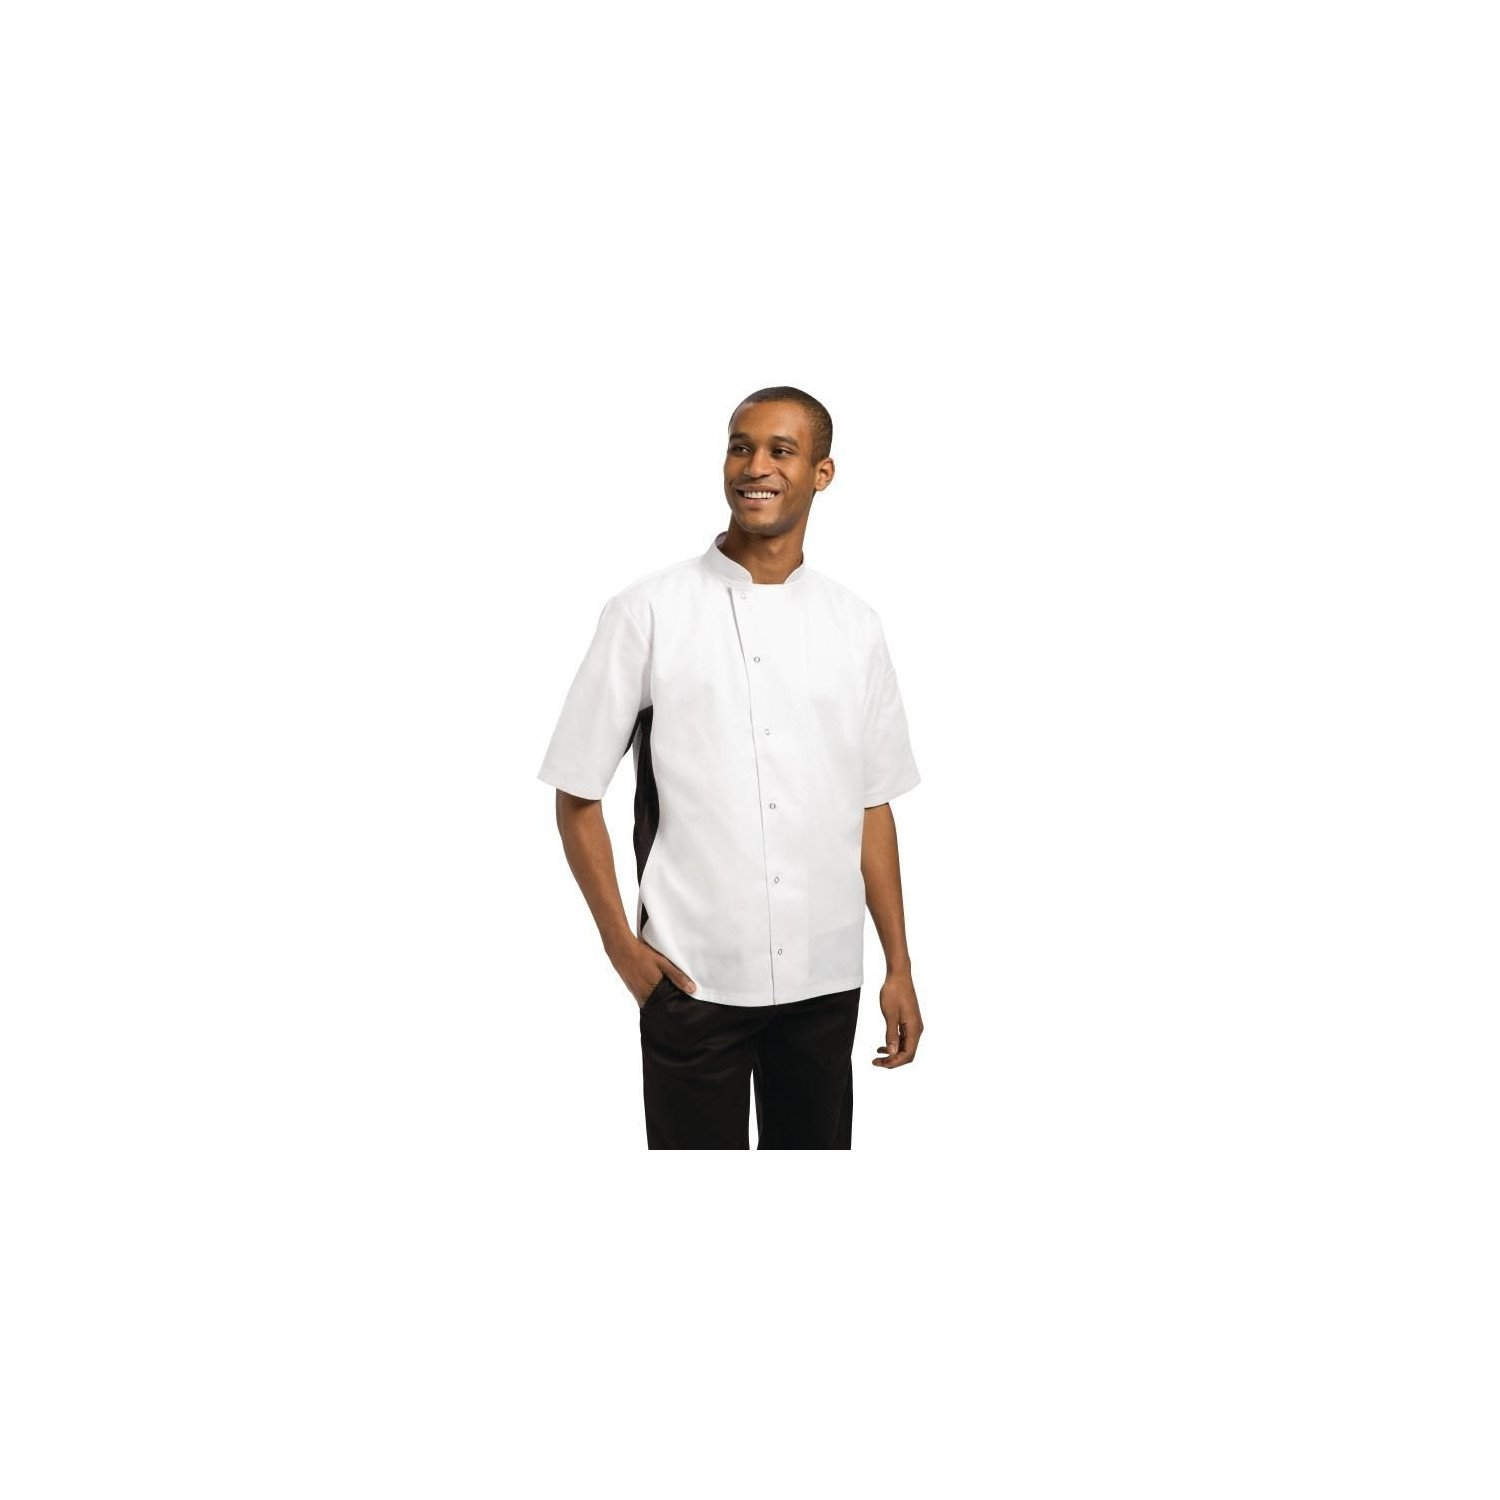 Nevada Chefs Jacket White with Black Contrast - Size M WHITES CHEFS APPAREL Nisbets Vêtements